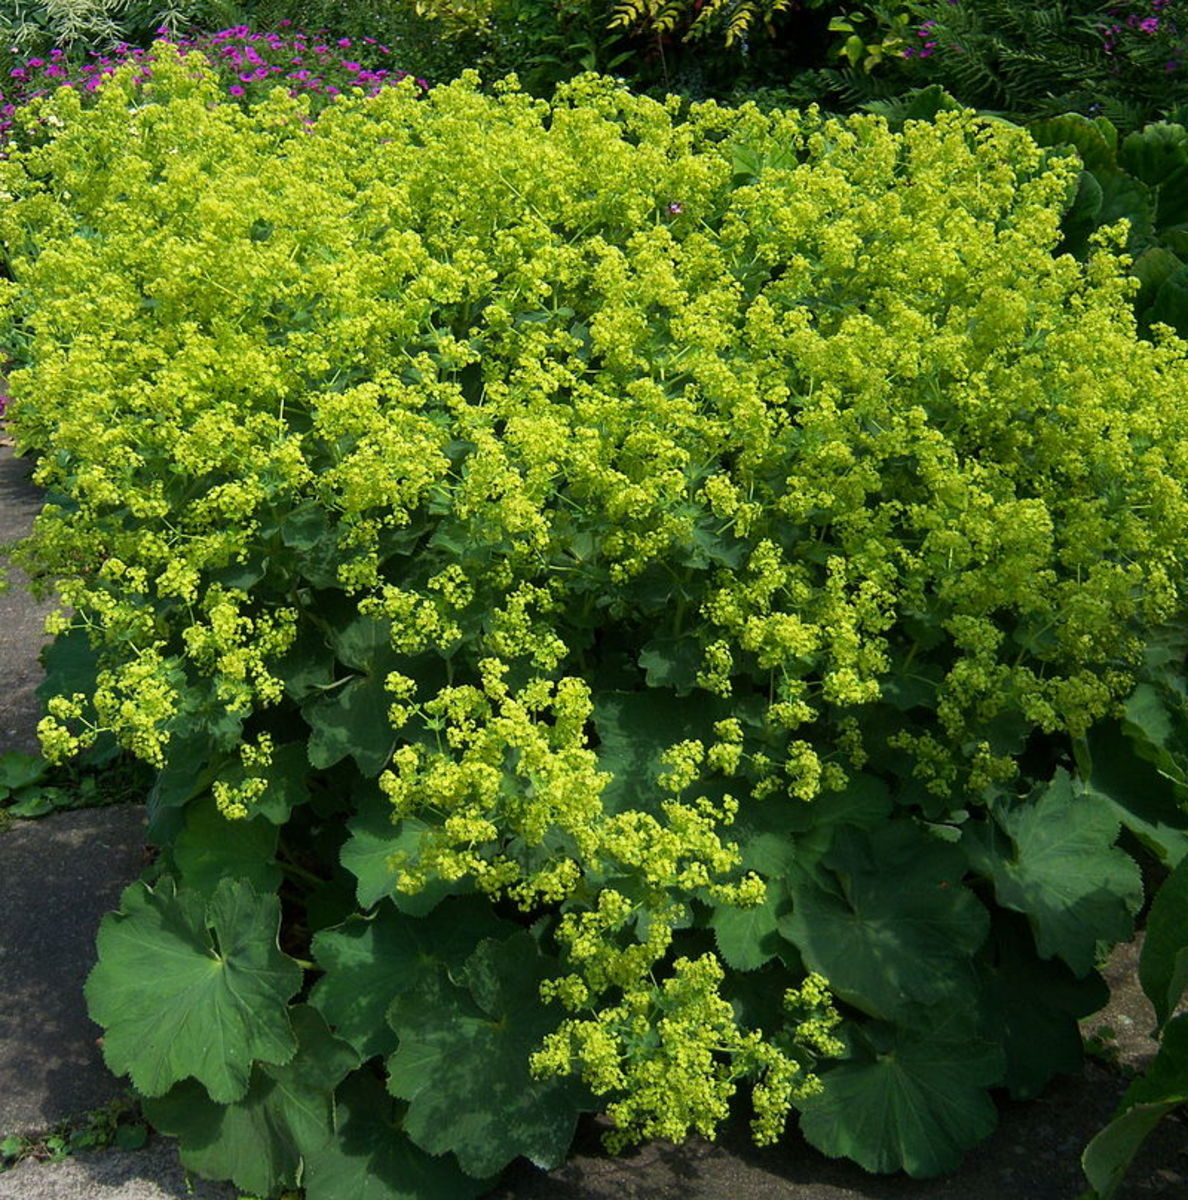 How to Grow Lady's Mantle, a Cottage Garden Favorite